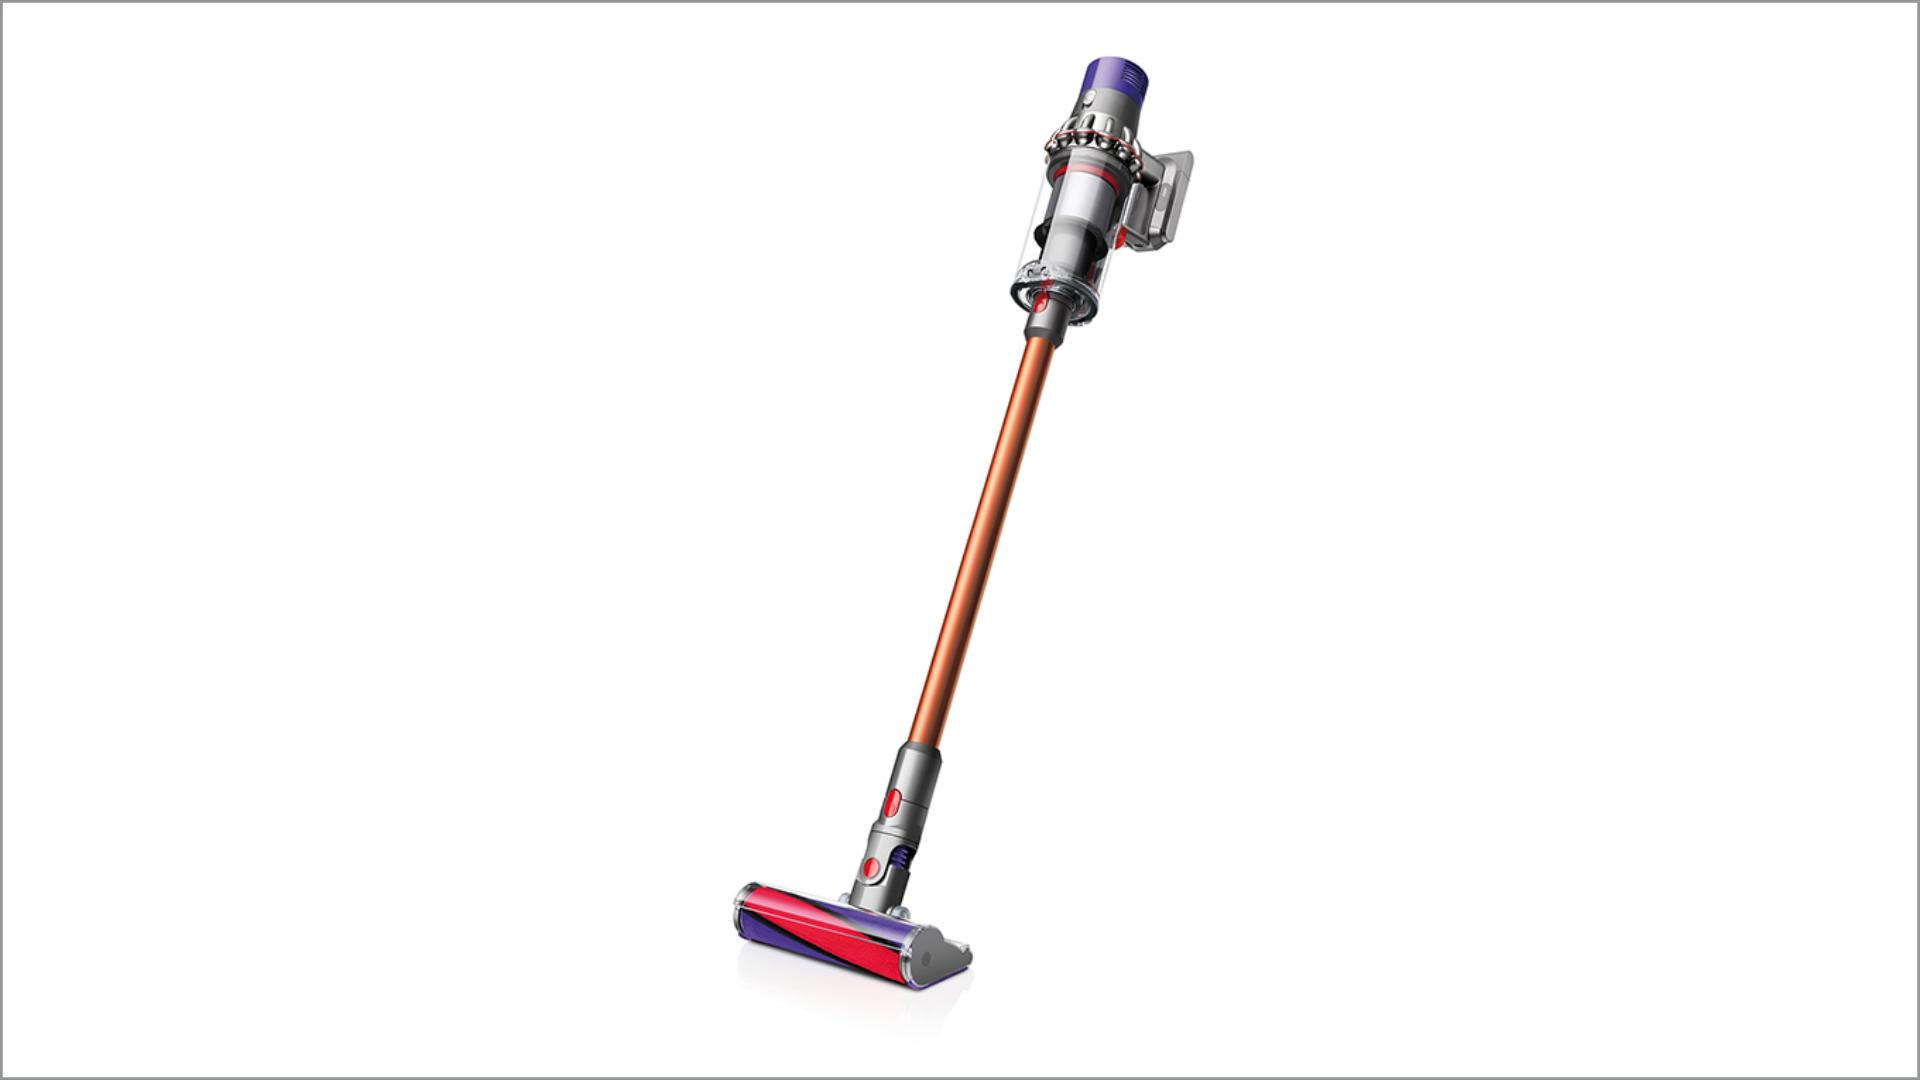 Dyson Cyclone V10 vacuum cleaner